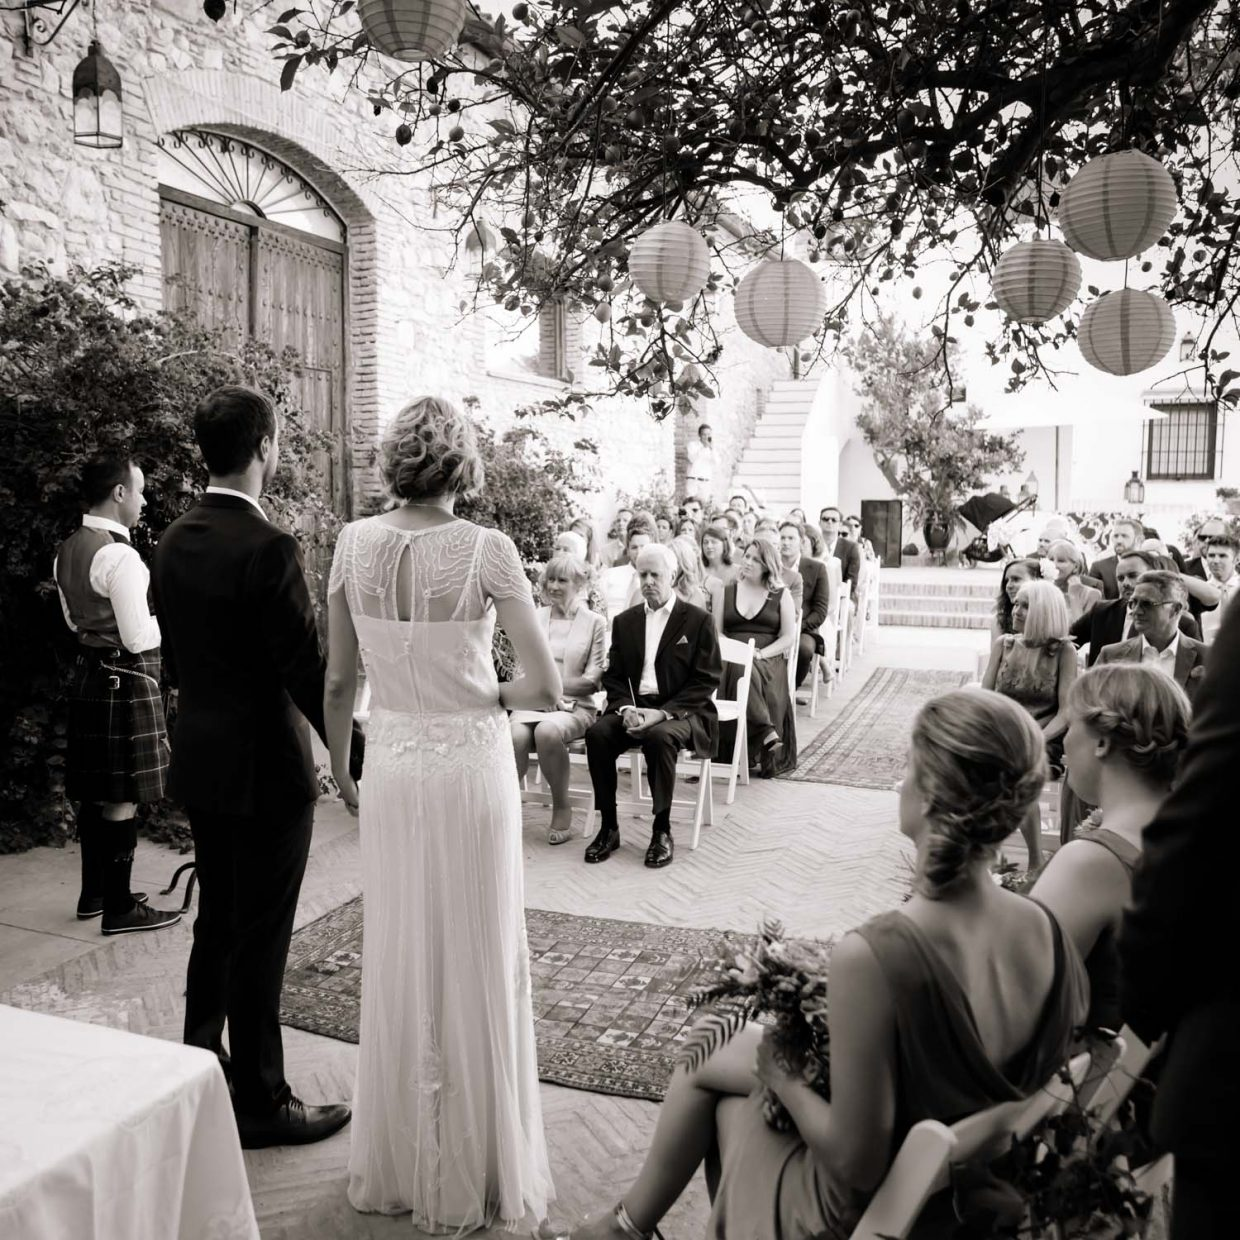 open air wedding ceremony at Faín Viejo